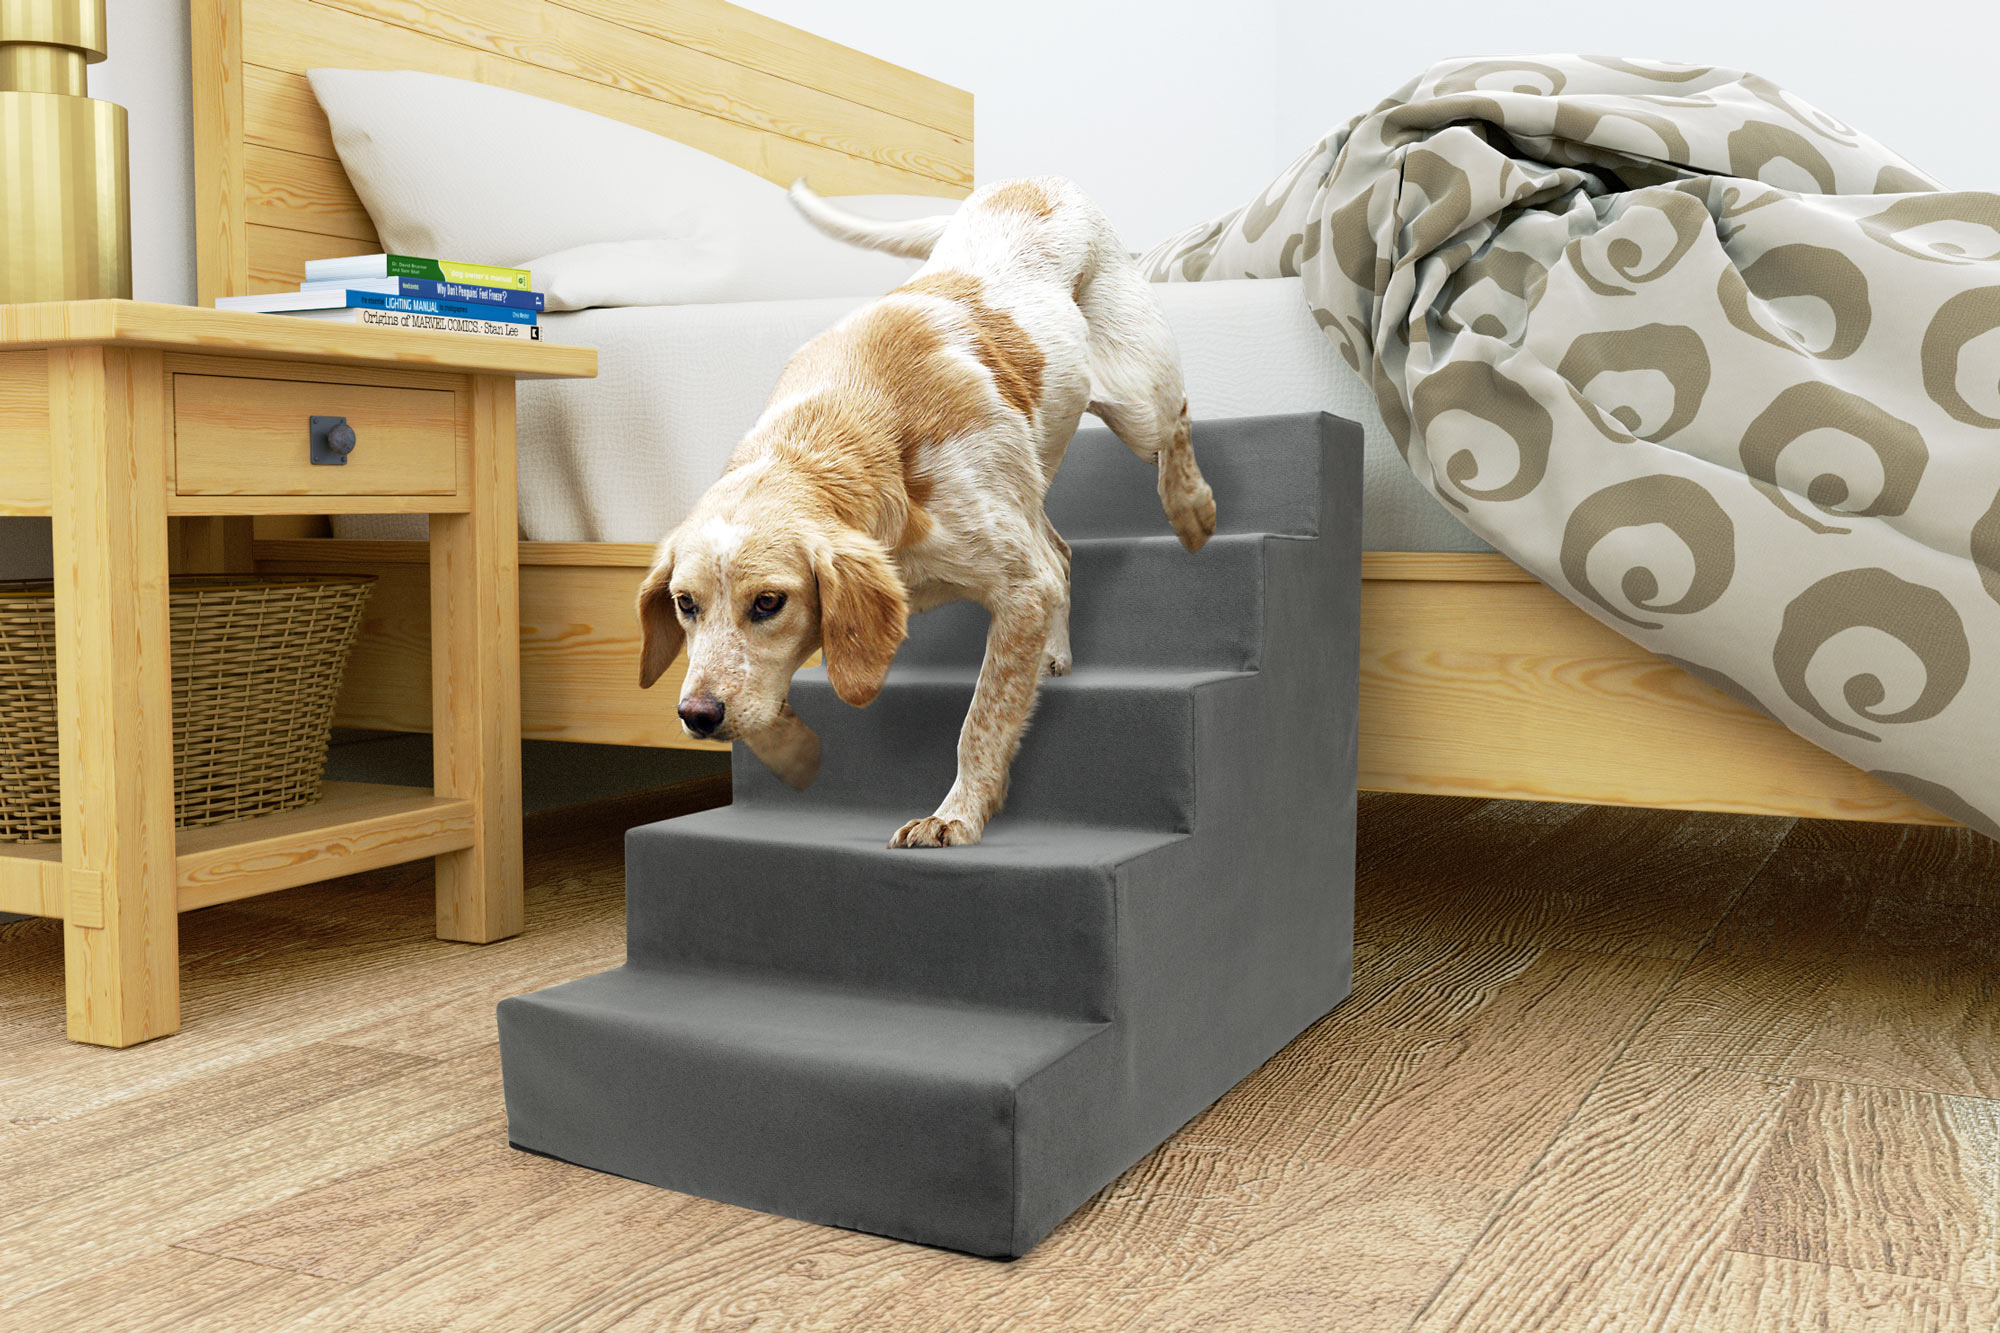 5 Step Portable Pet Stairs By Home Base   Walmart.com